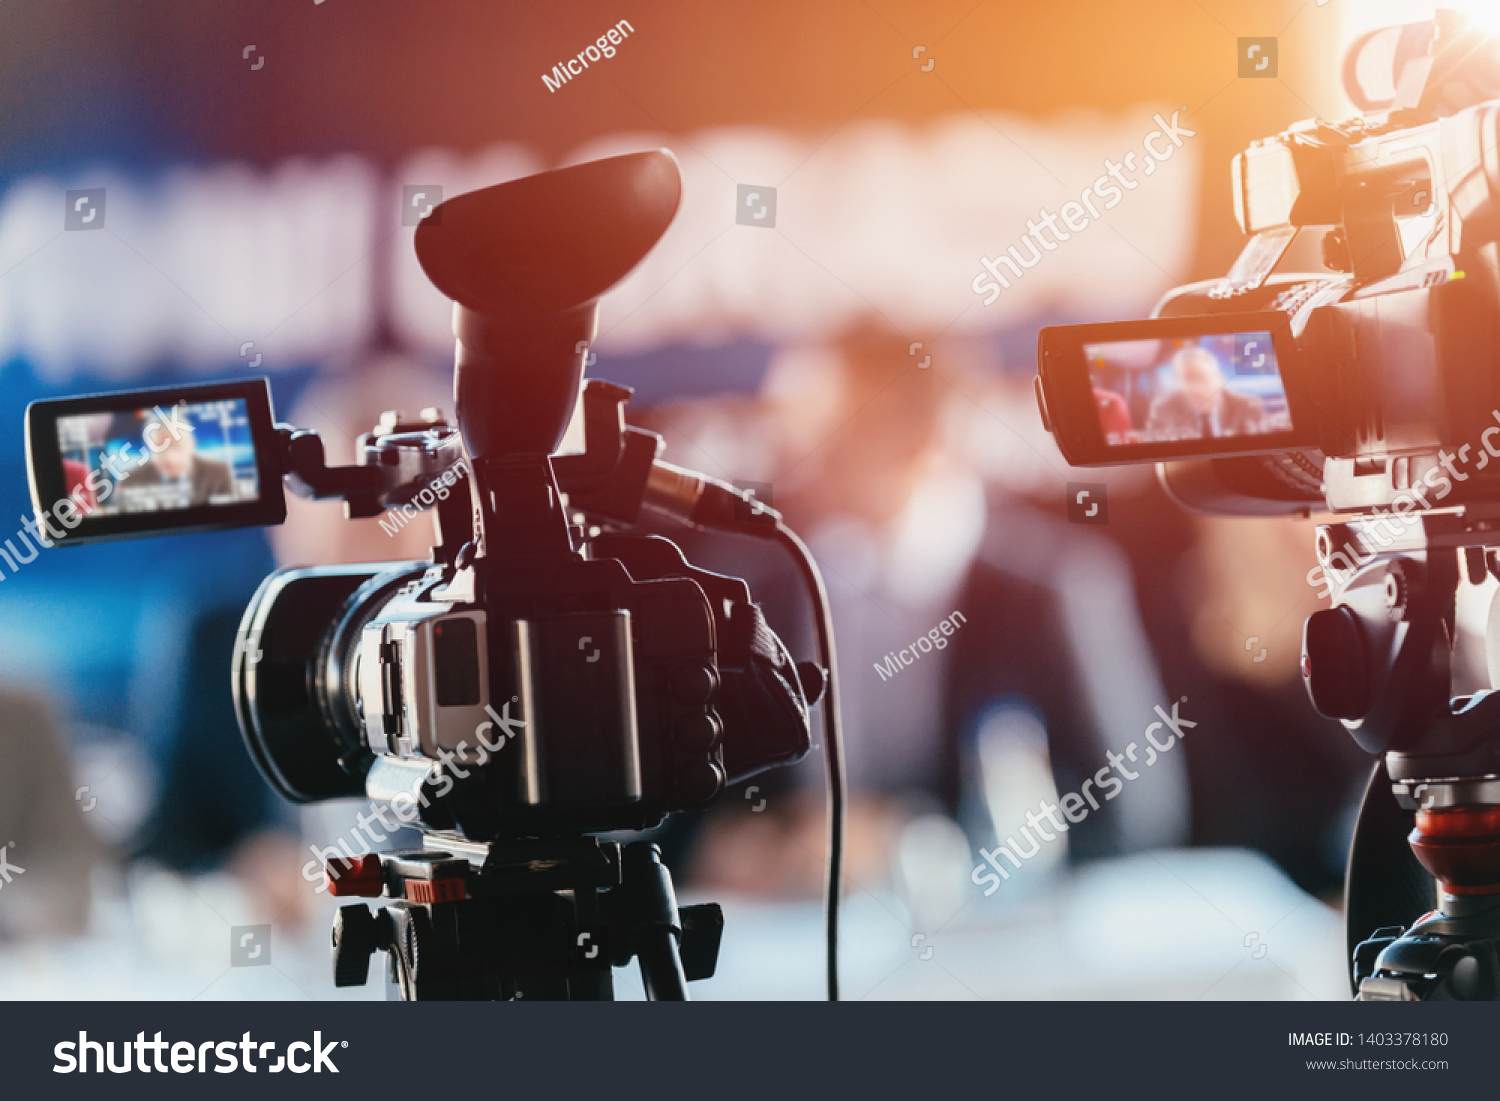 Two cameras recording presentation at press conference, blurred speakers wearing suits background, live streaming concept